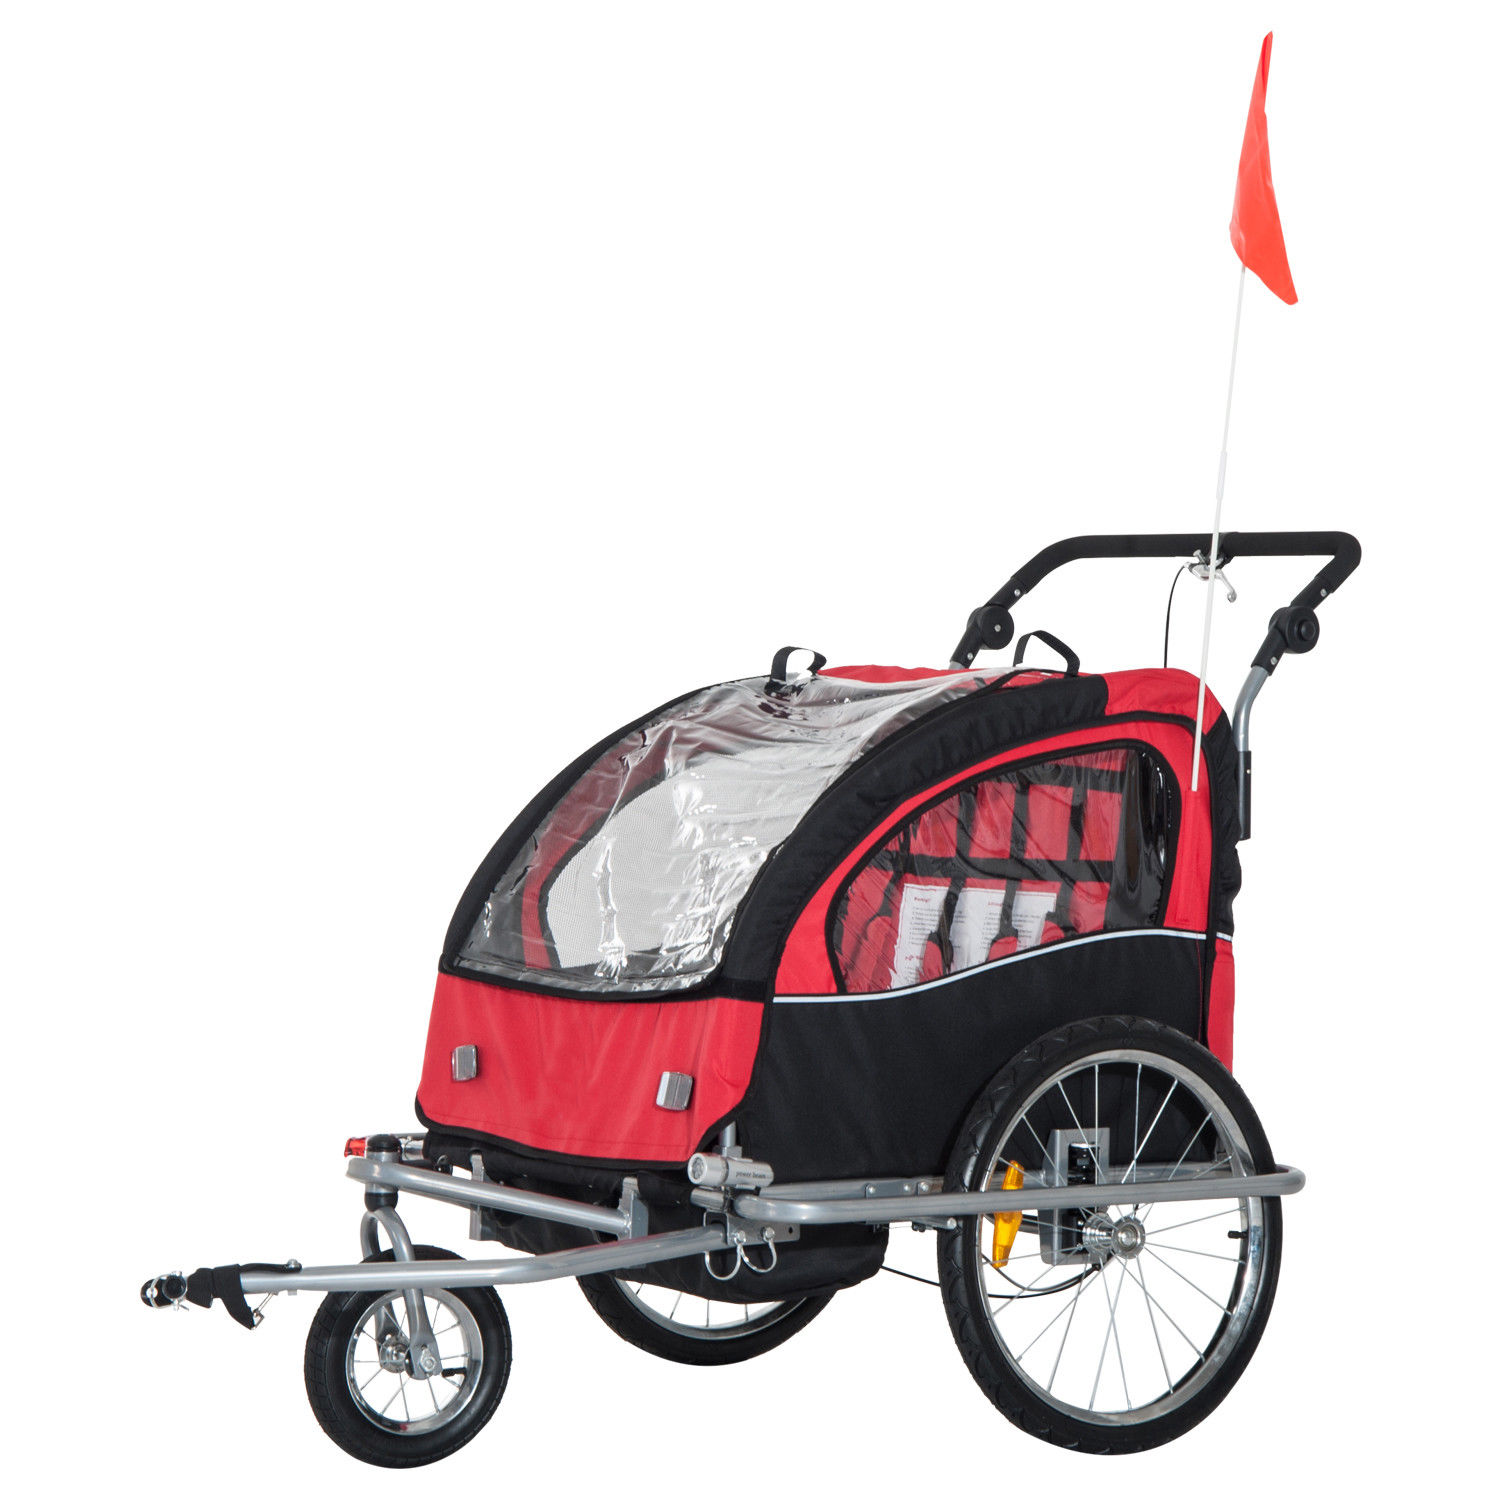 2-Seater-Child-Bike-Trailer-Kids-Carrier-Safety-Harness-Baby-Stroller-Jogger thumbnail 7